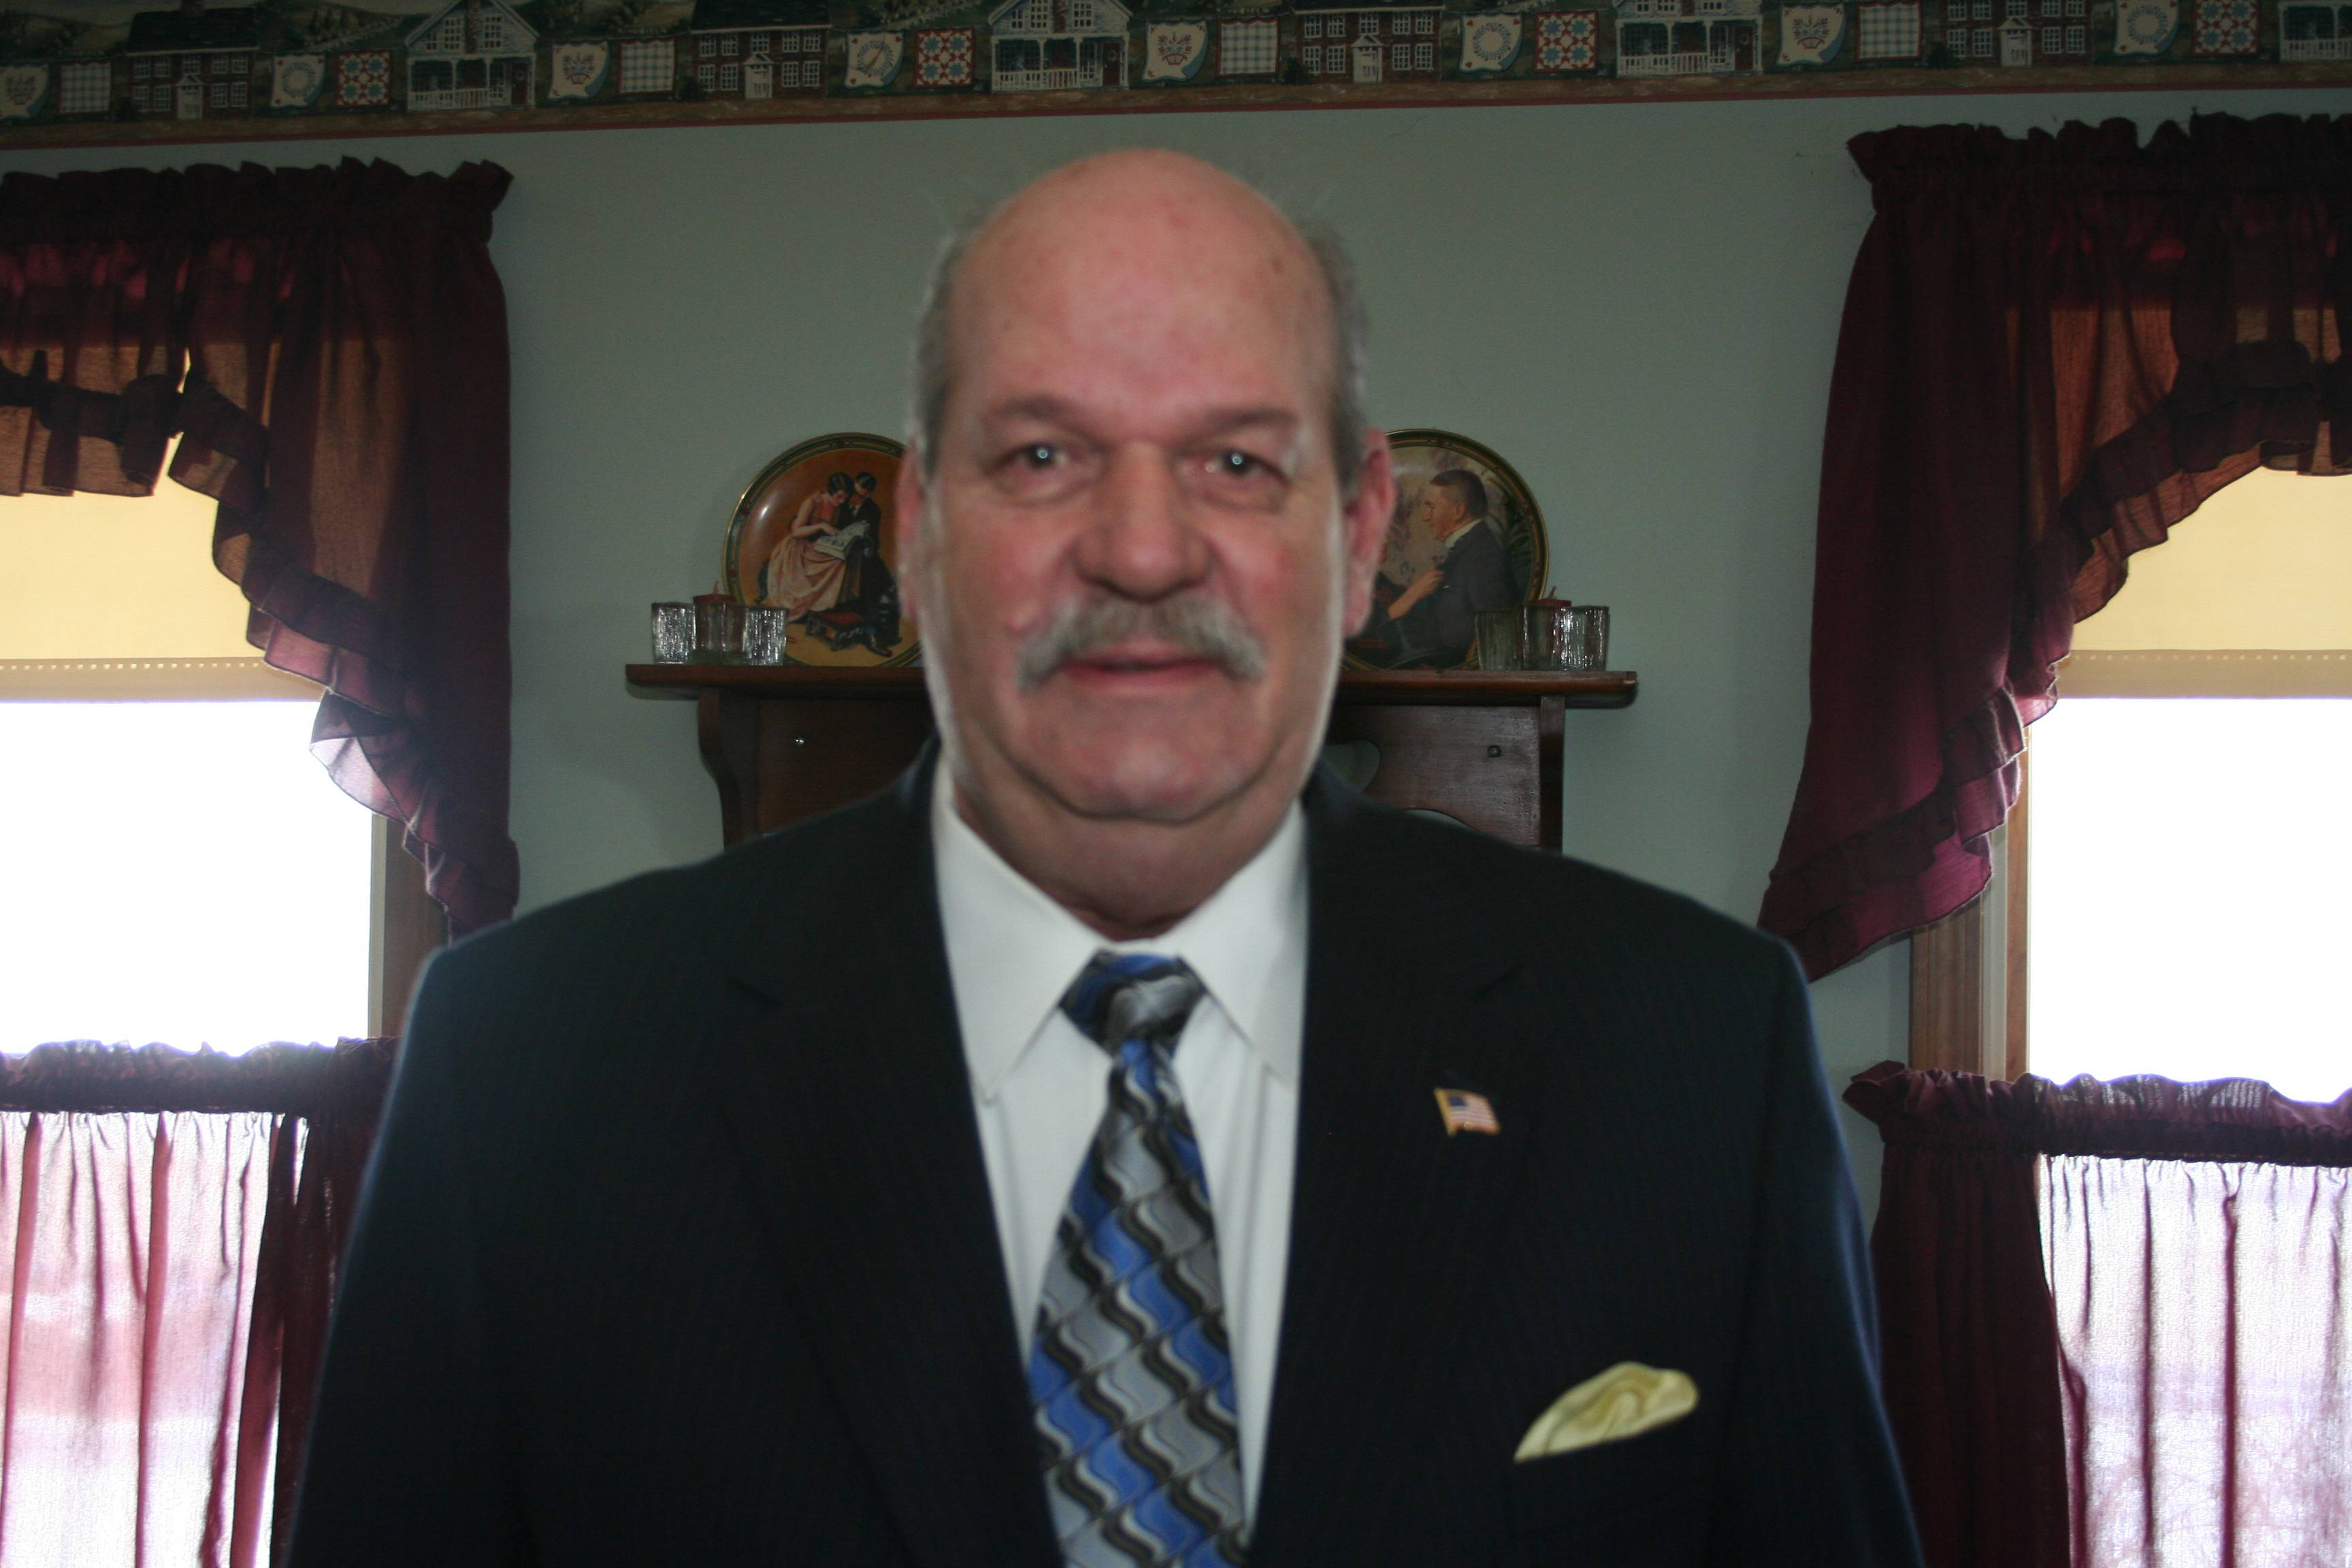 Lawrence W. Buske, running for Rolling Meadows Alderman, Ward 3